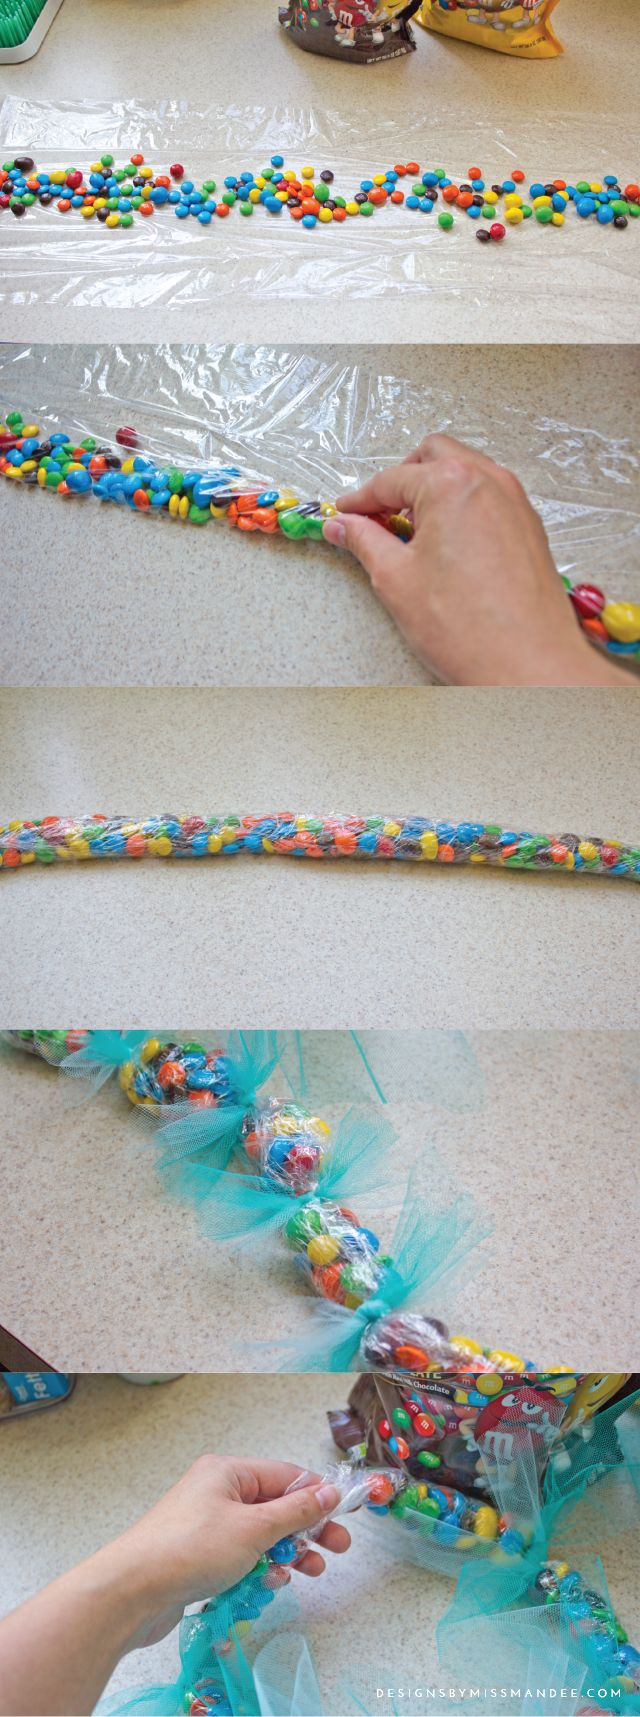 Leis with M&M's® and Hawaiian Clip art - Designs By Miss Mandee. Love the way these look! They would be perfect for a summer luau party! #ShareFunshine #Ad